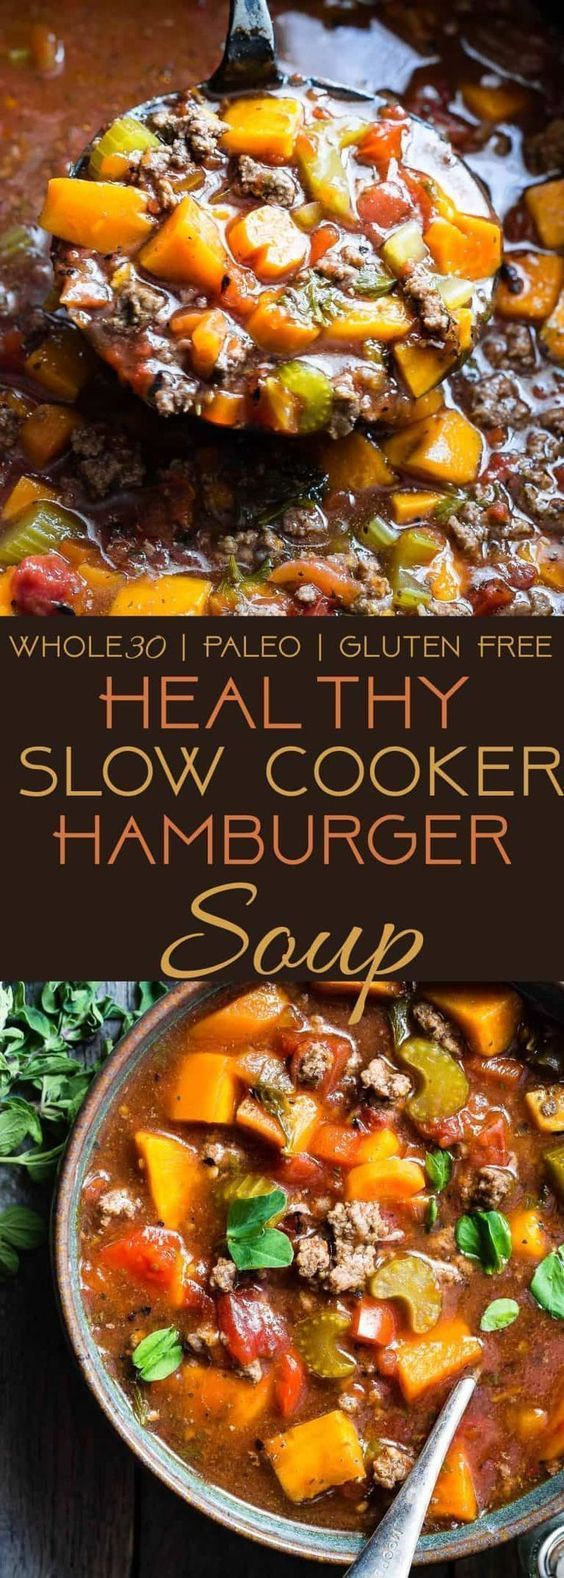 Crock Pot Paleo Hamburger Soup Recipe | Food Faith Fitness, Baking #cheap healthy recipes #Crock #de...